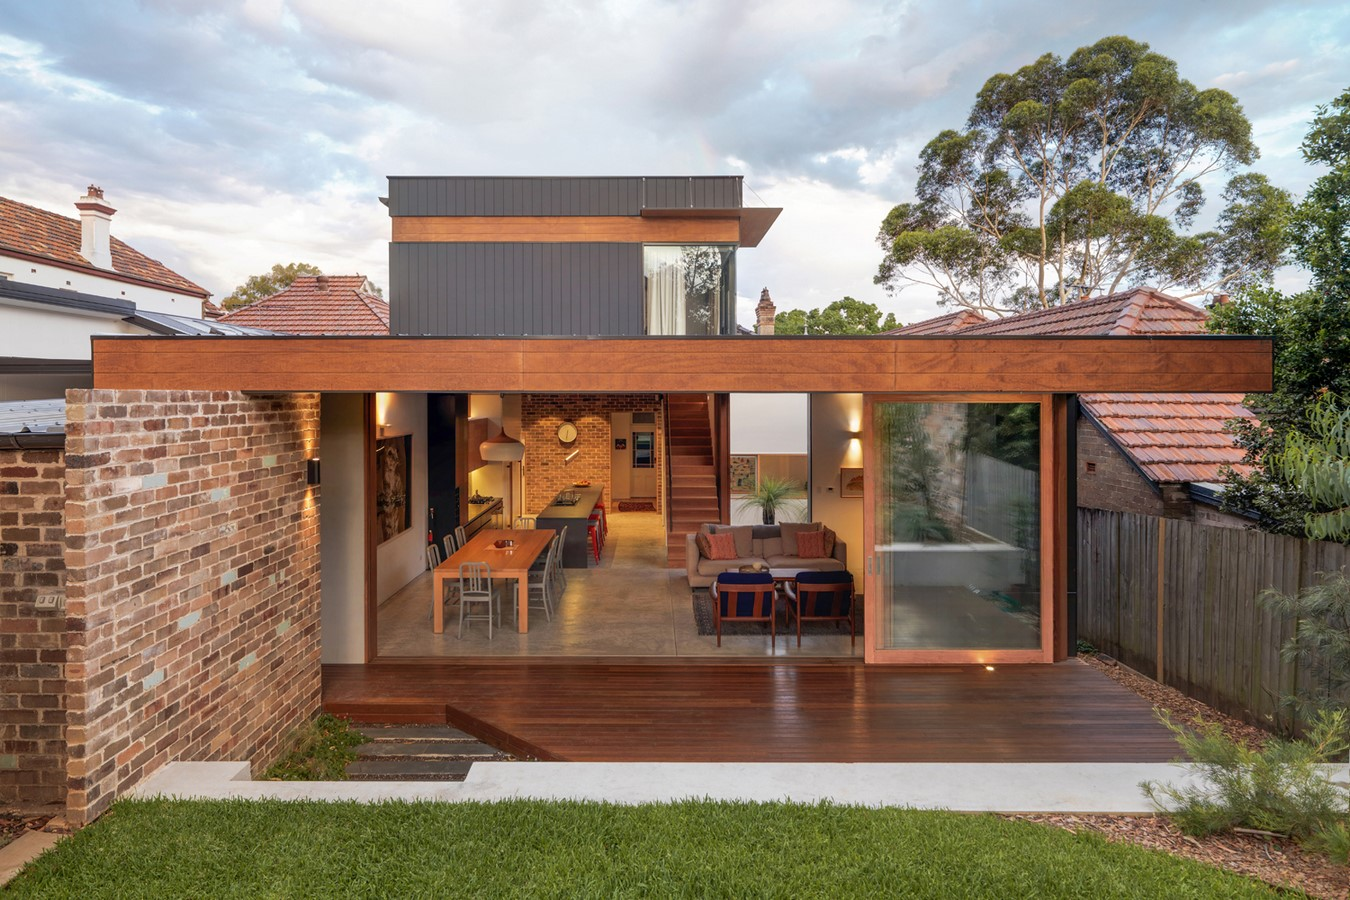 5145 Suntrap by Anderson Architecture: Sheet 1